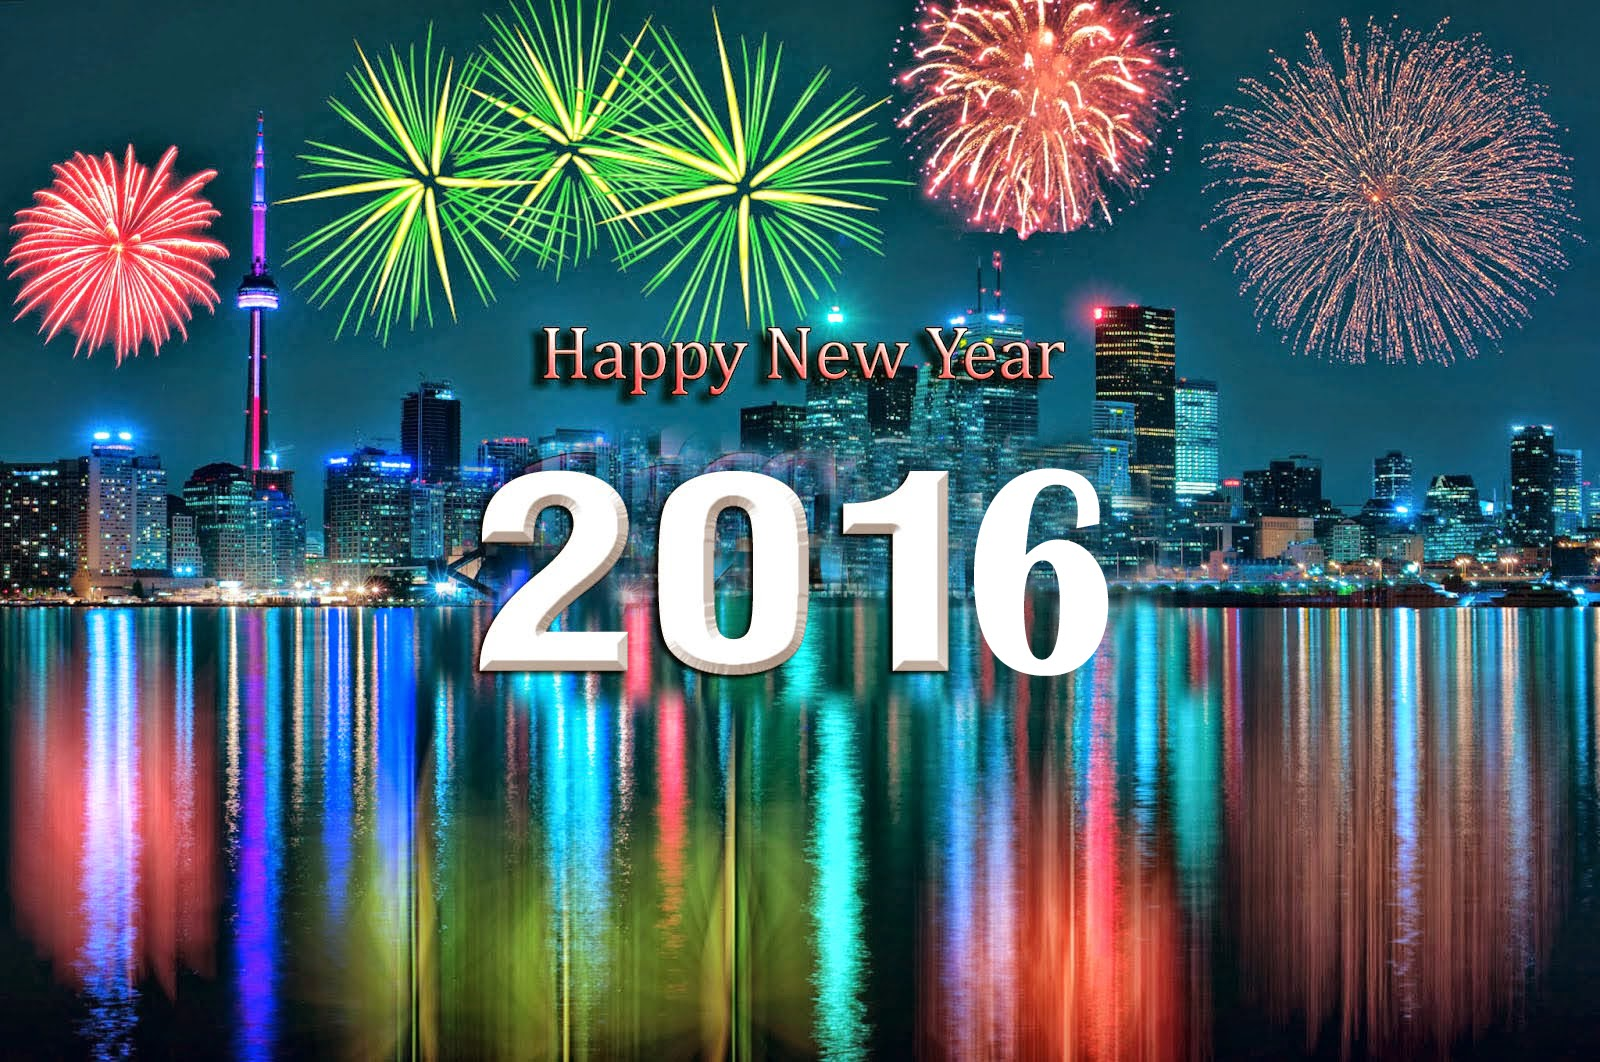 Wallpaper download new year 2016 - Download 20 Happy New Year 2016 Mobile Wallpapers